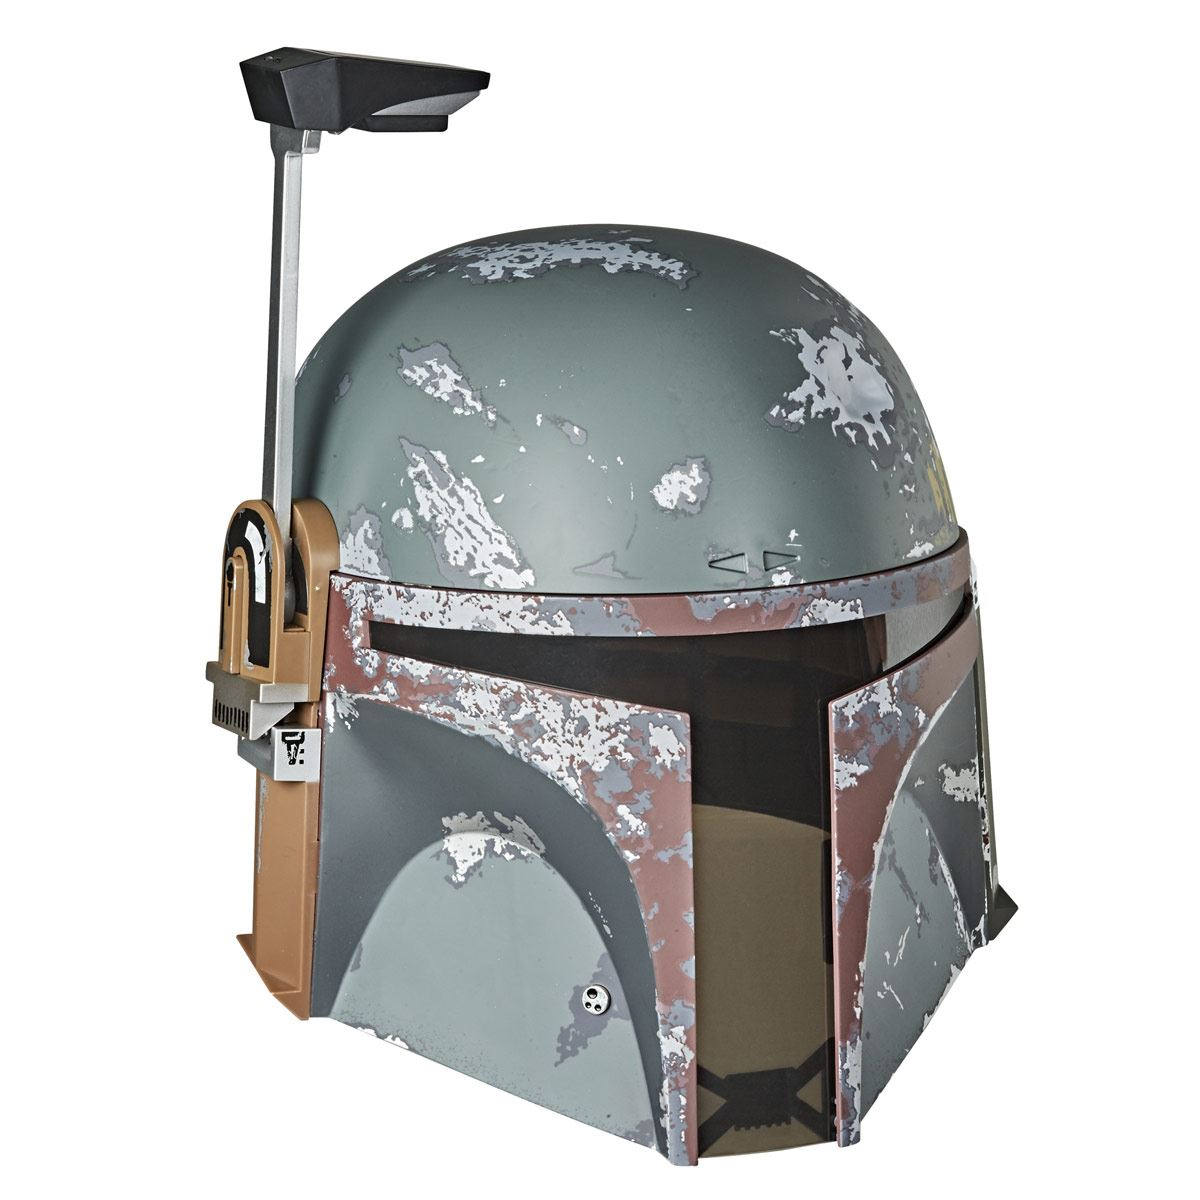 Star Wars The Black Series Boba Fett Casco electrónico premium